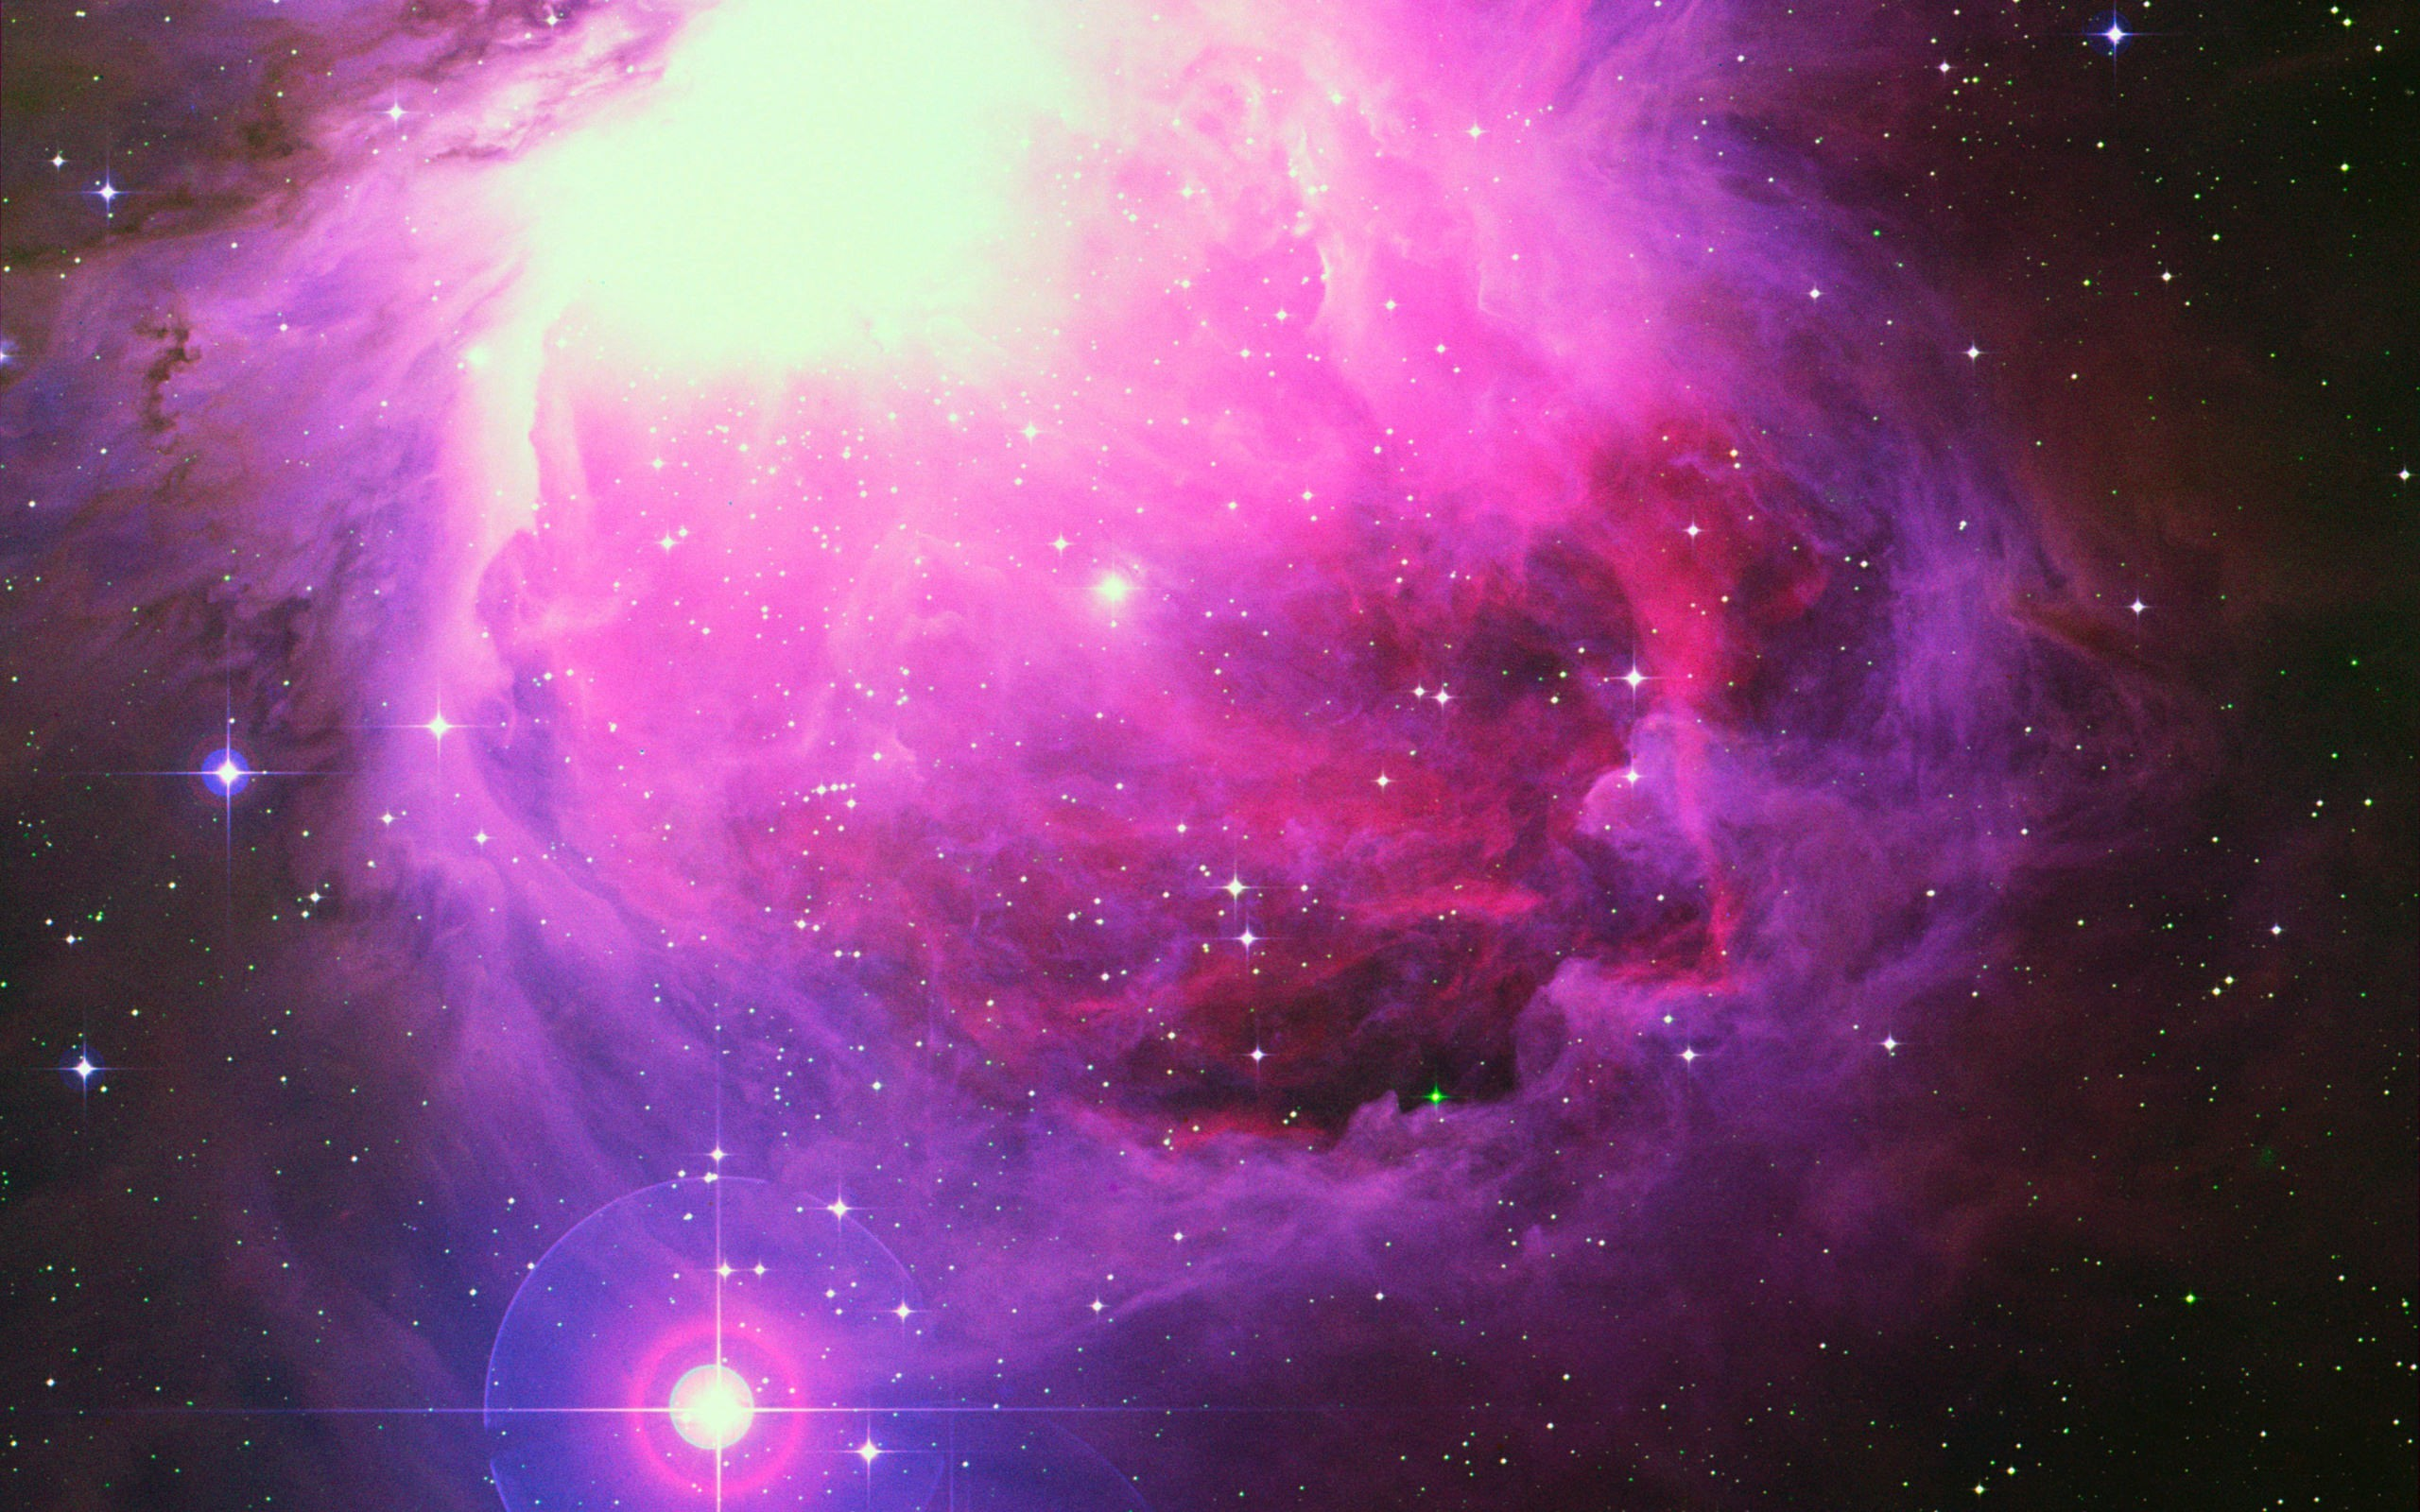 2560x1600  Outer Space Background Tumblr Outer Space Tumblr Themes Cool  Outer Space Background Tumblr